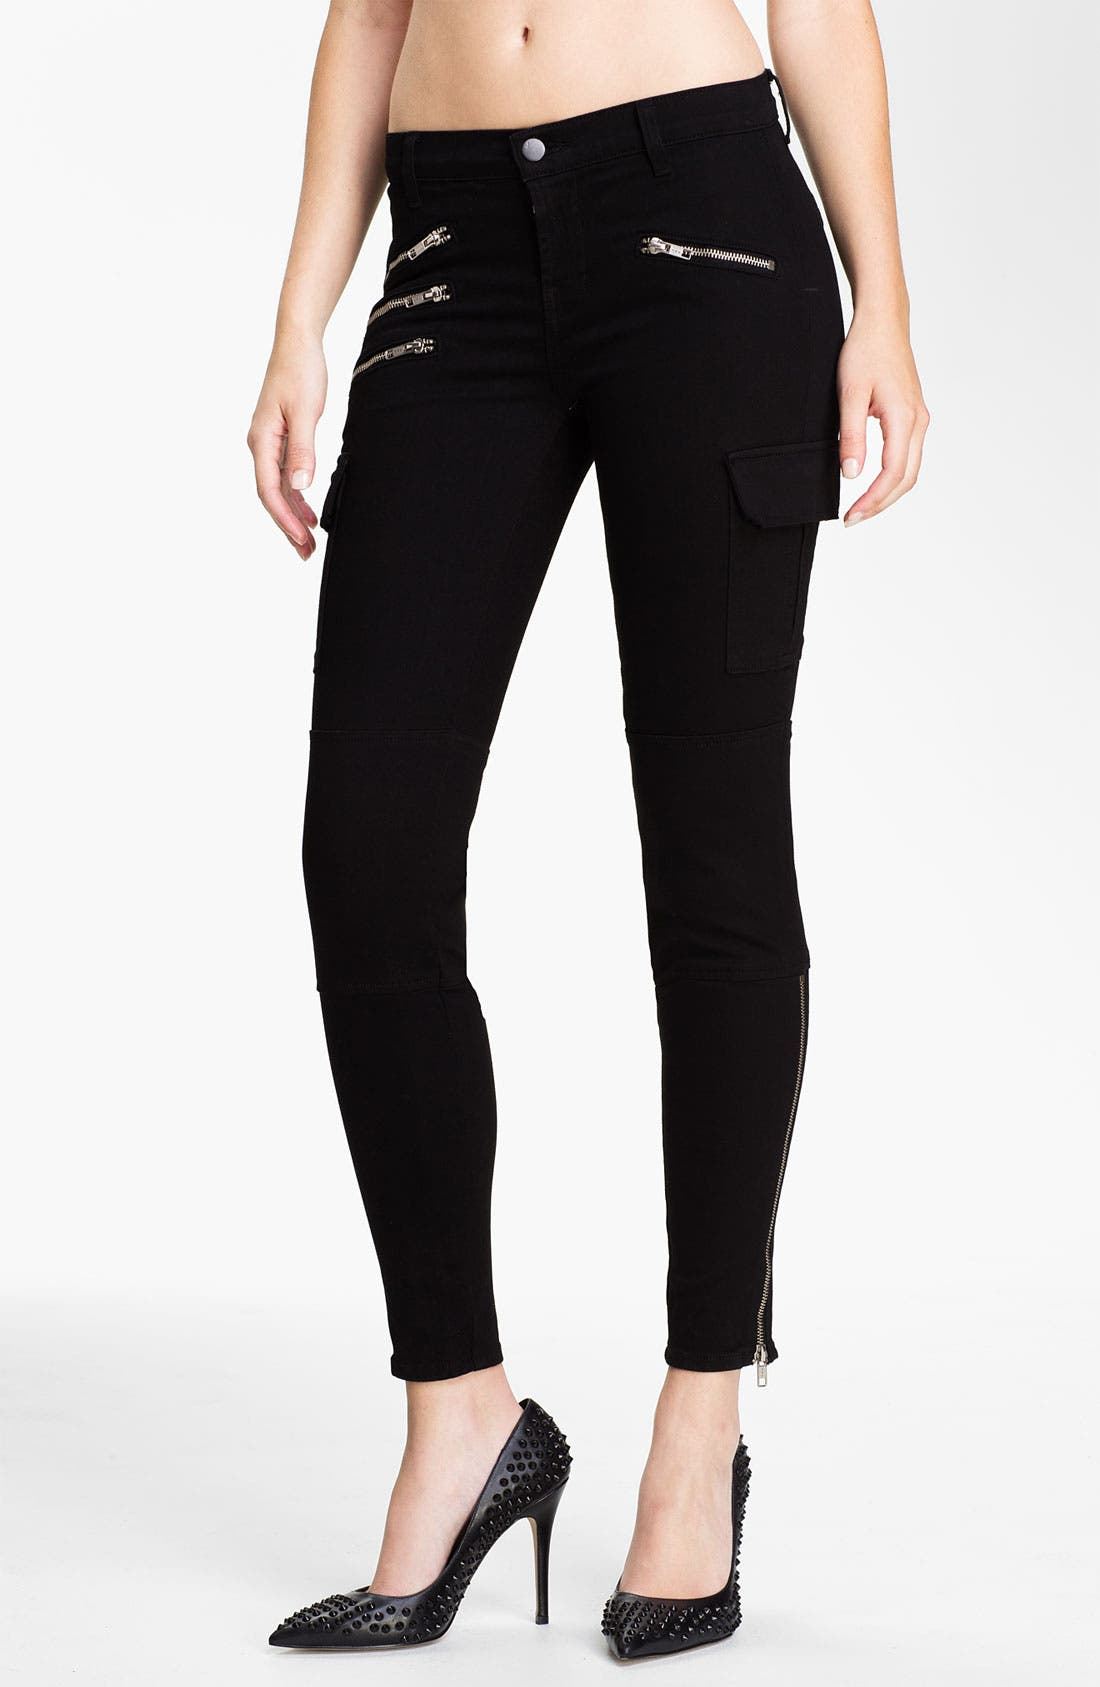 Alternate Image 1 Selected - J Brand 'The Brix' Slim Leg Pants